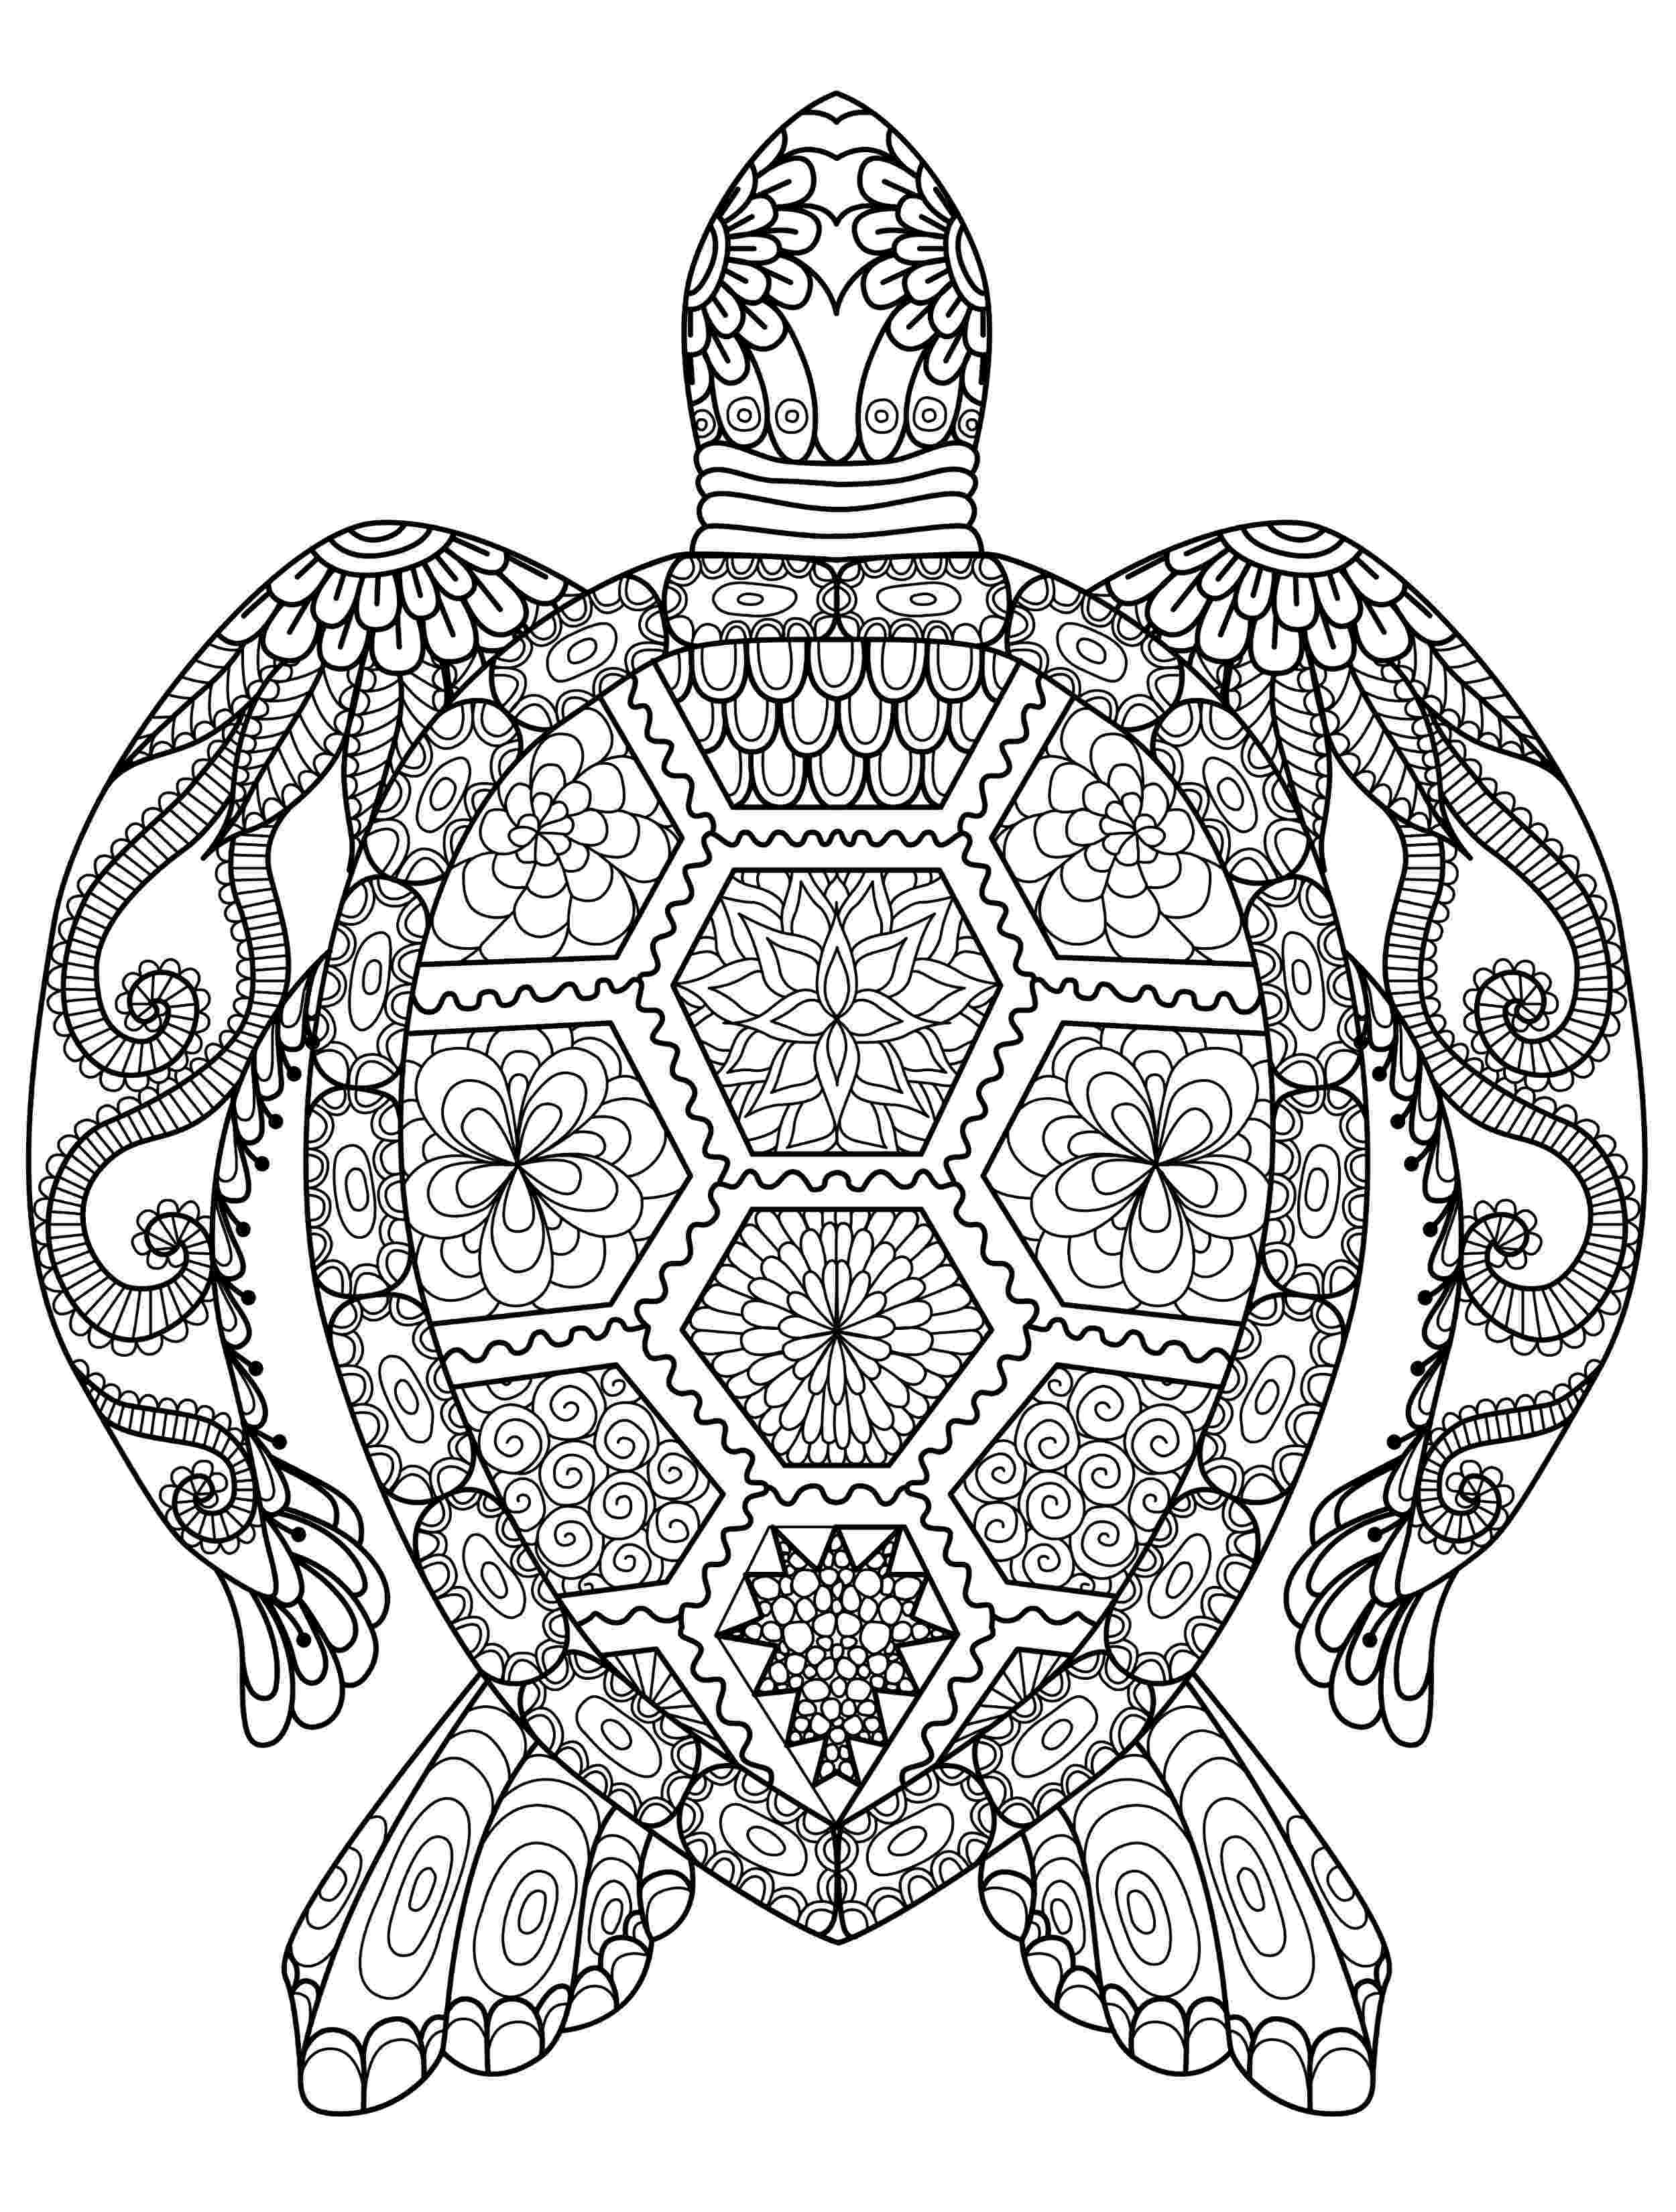 colouring pages for adults animals animal coloring pages for adults best coloring pages for for animals colouring adults pages